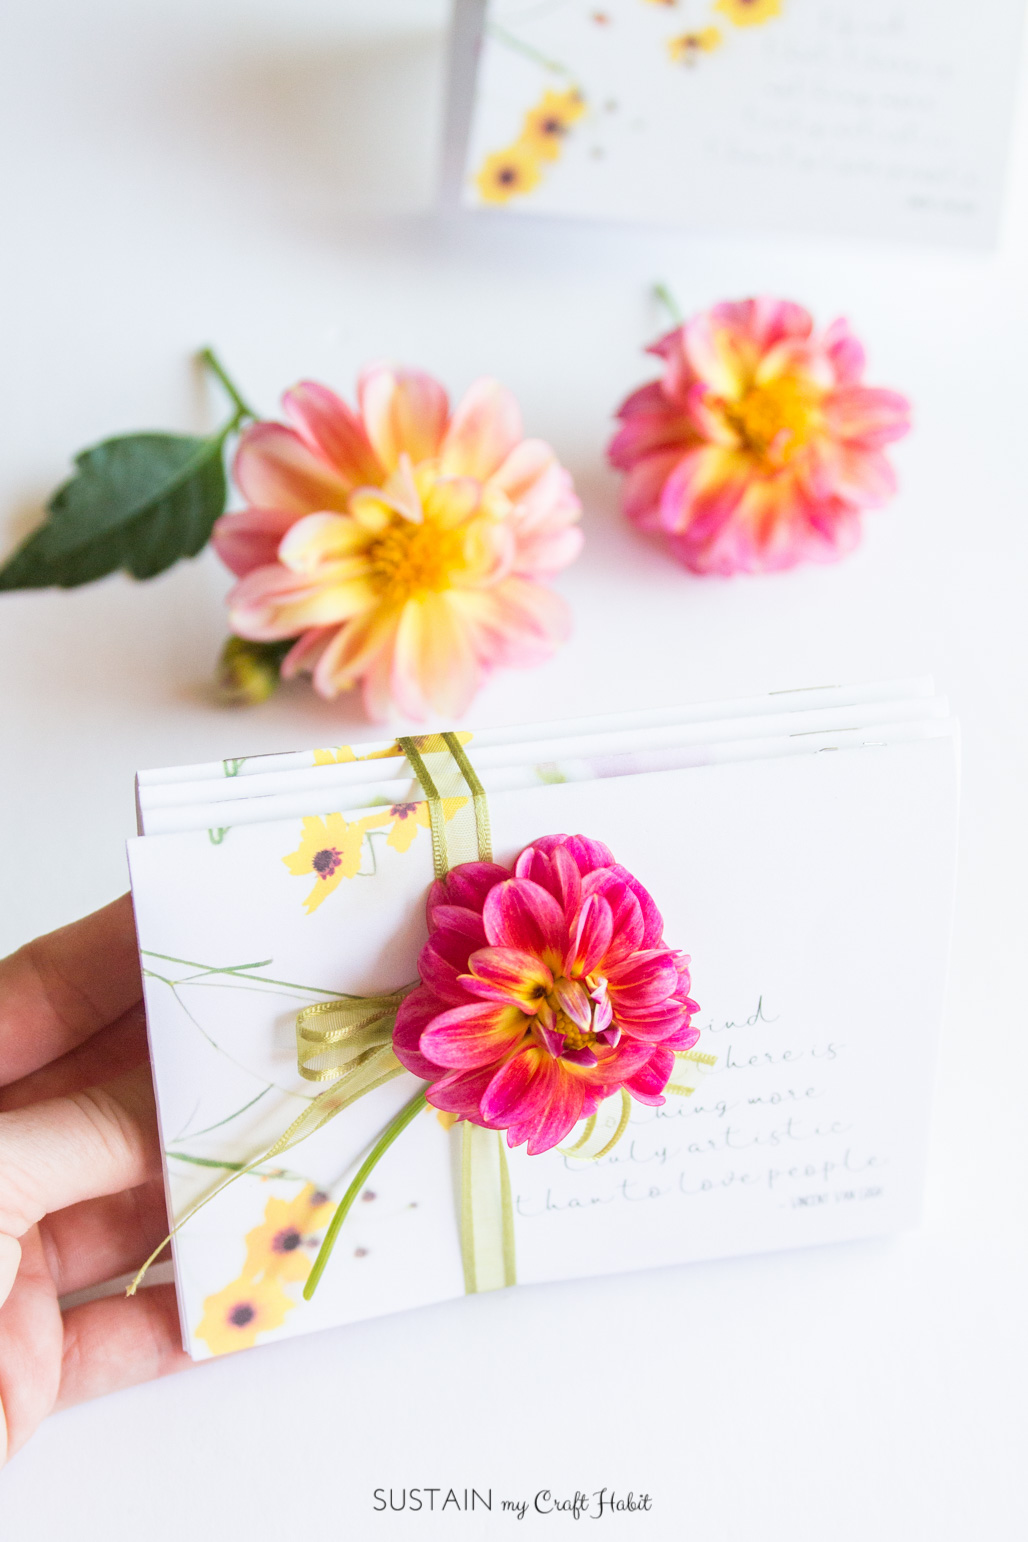 Such a thoughtful handmade gift idea! Make these DIY miniature notebooks for a friend. Free printable floral covers included!